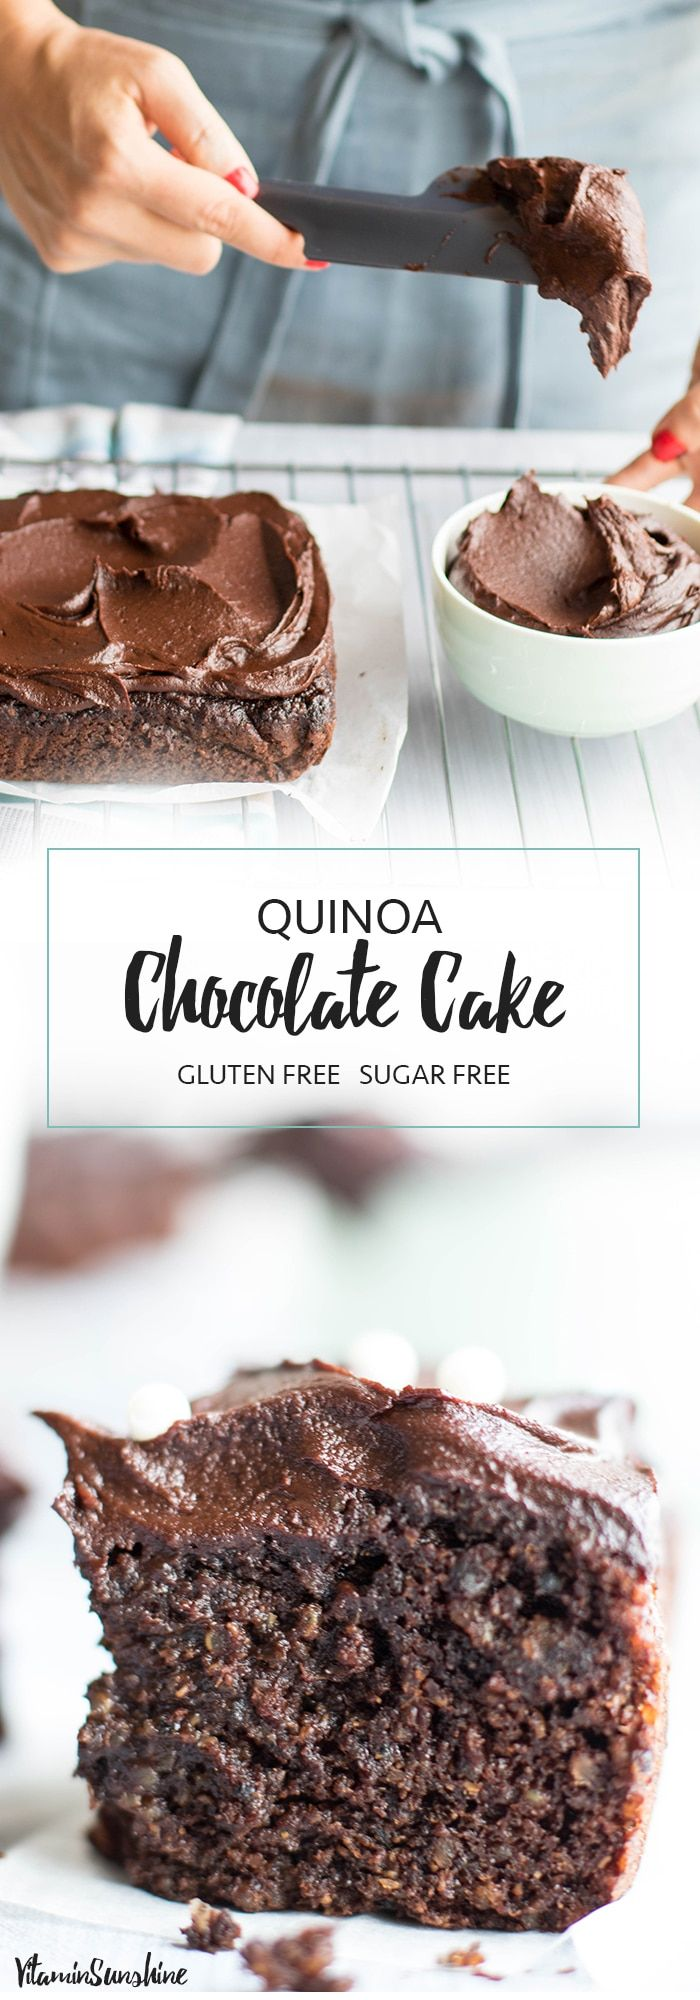 Chocolate Quinoa Cake / This healthy chocolate snack cake is made with quinoa and sweetened entirely with fruit! #glutenfree #quinoa #chocolatecake #cake #healthy #sugarfree